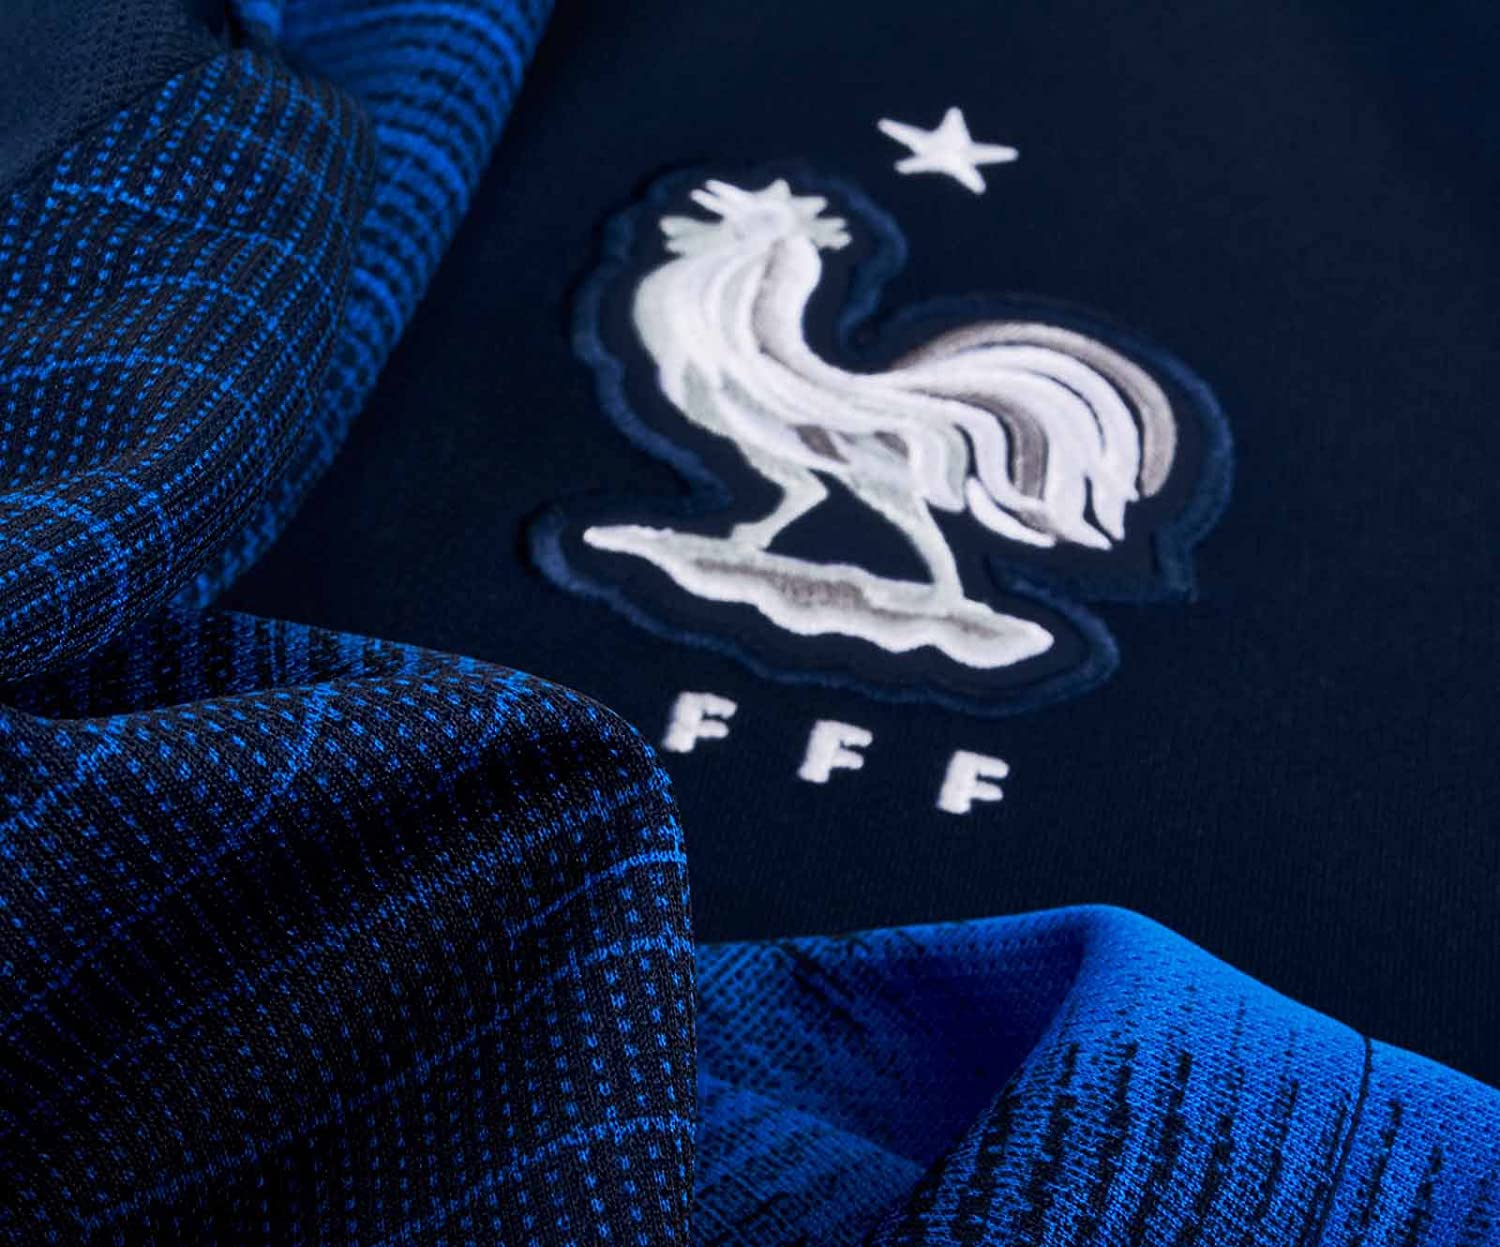 Amazon.com: Nike Griezmann #7 France Home - Camiseta de ...